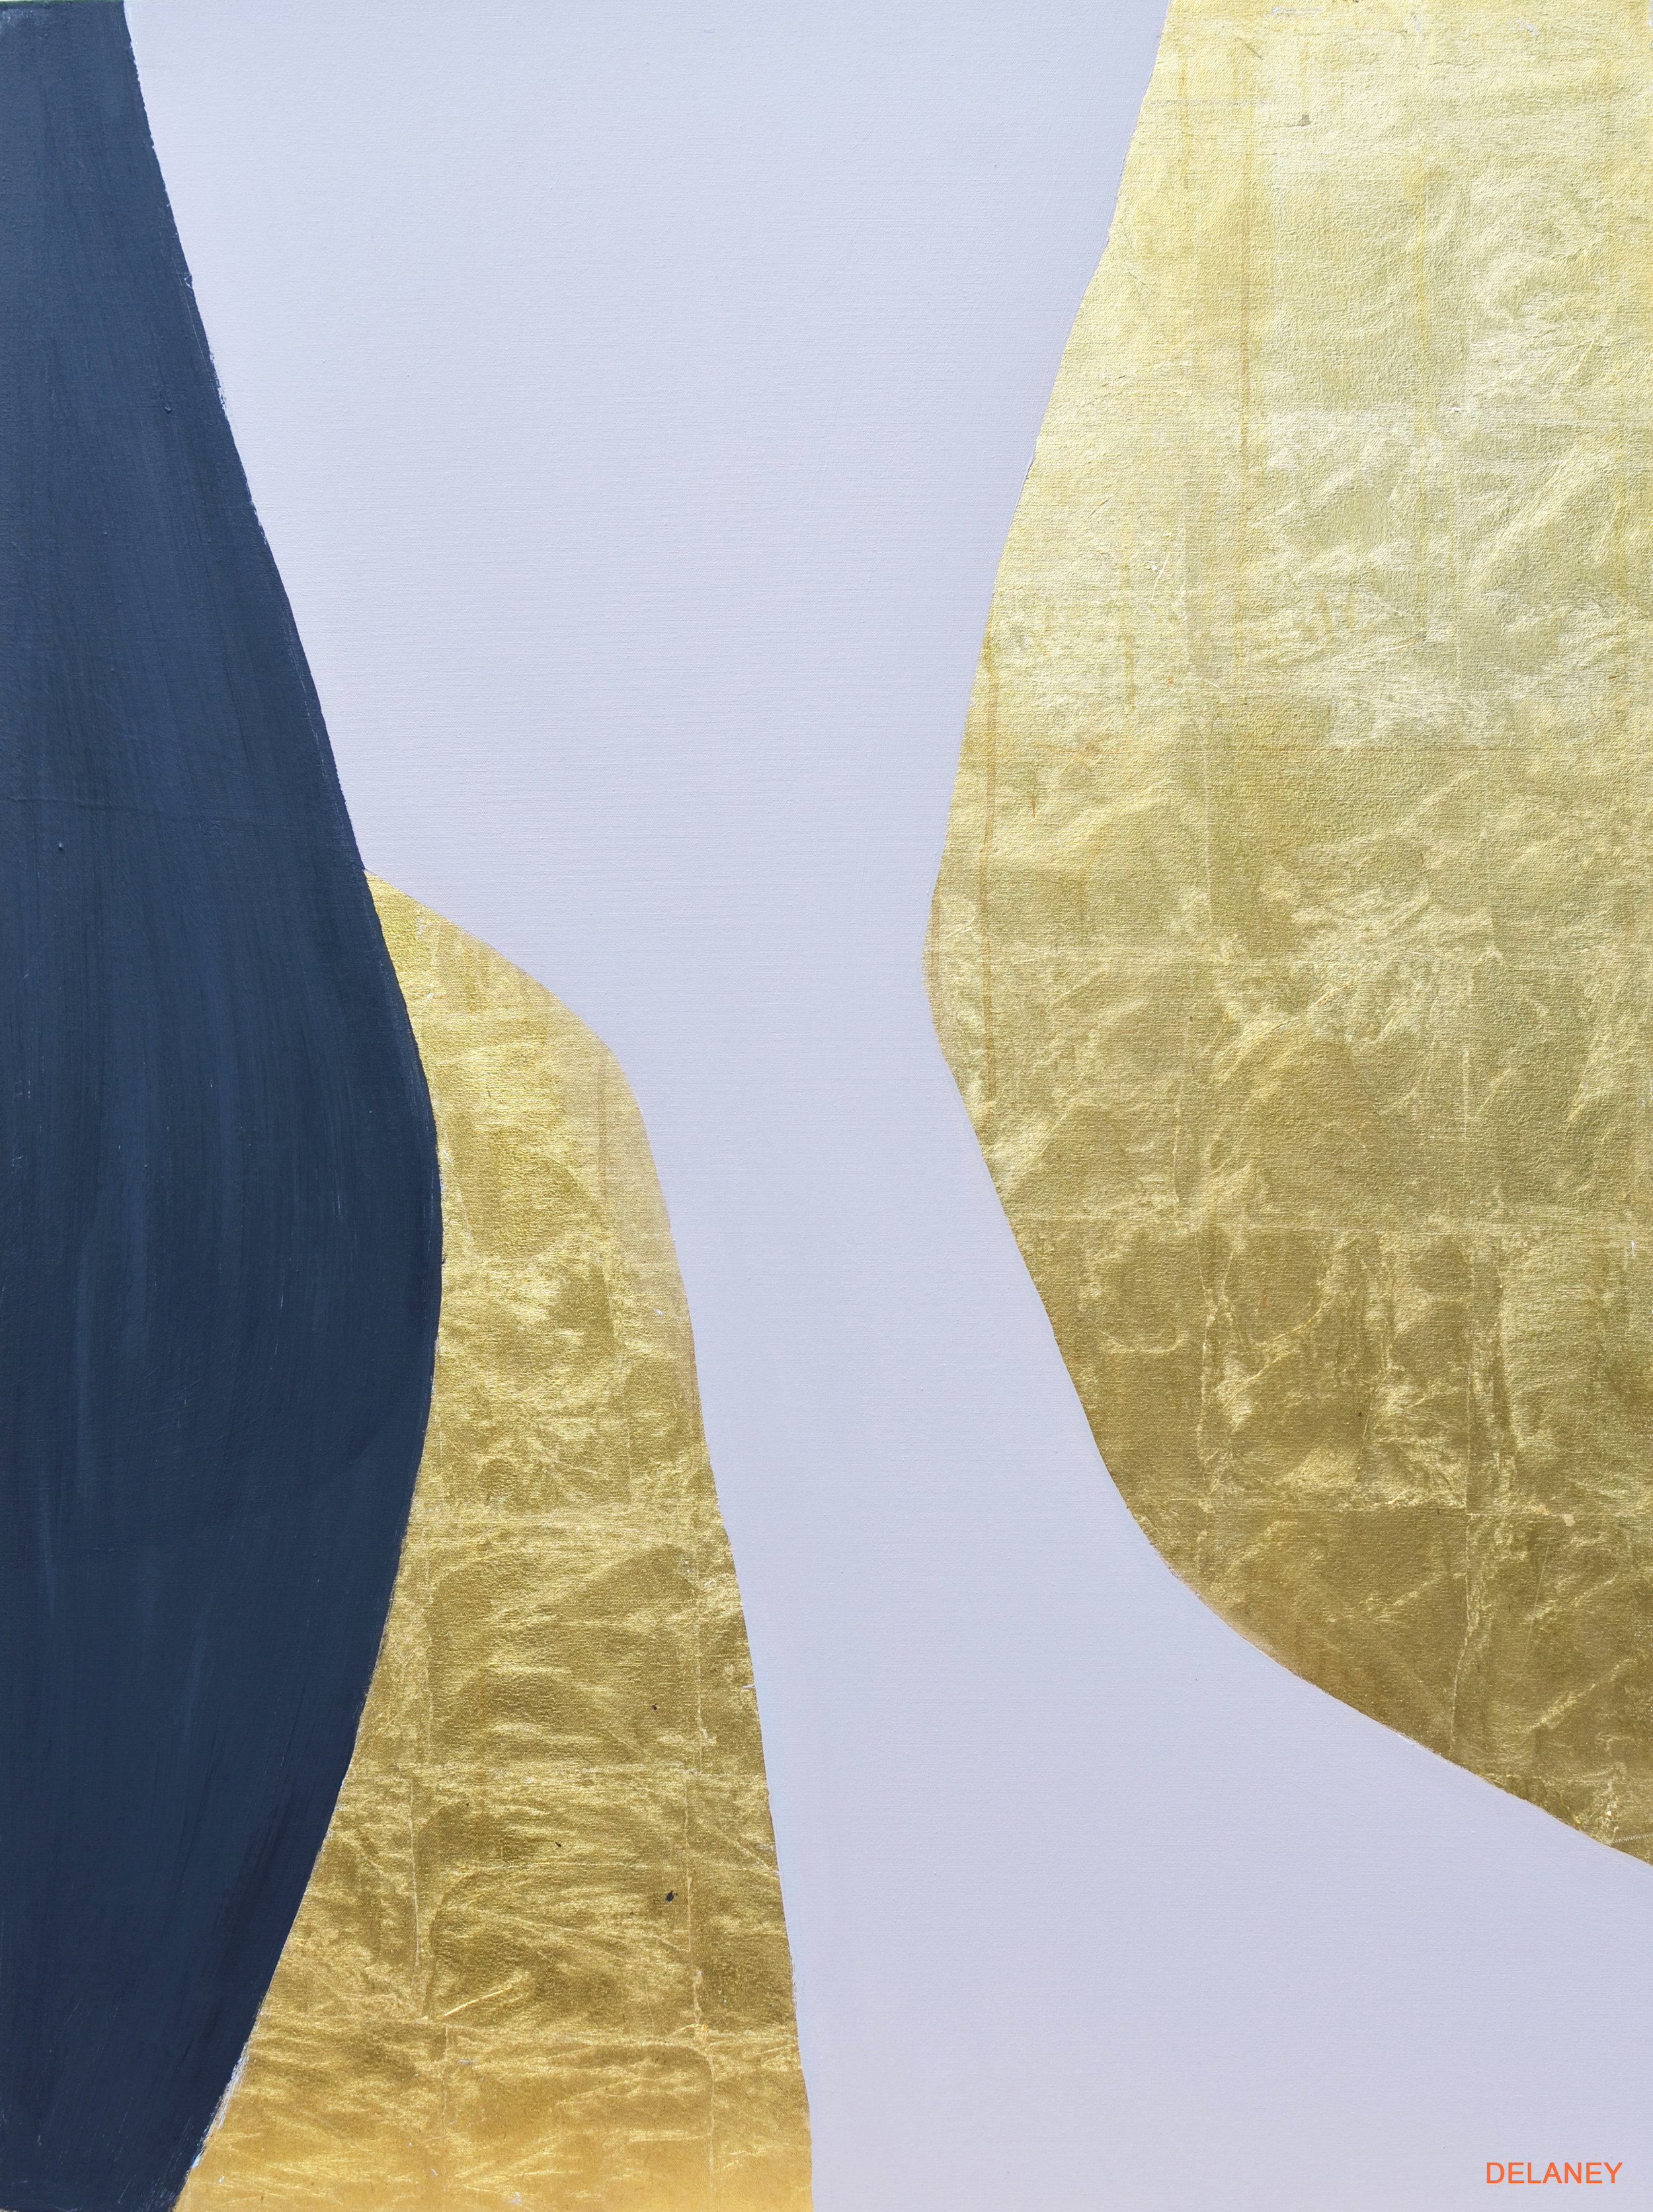 Grey Triptych #1  Gold leaf and acrylic on canvas (122x91cm)